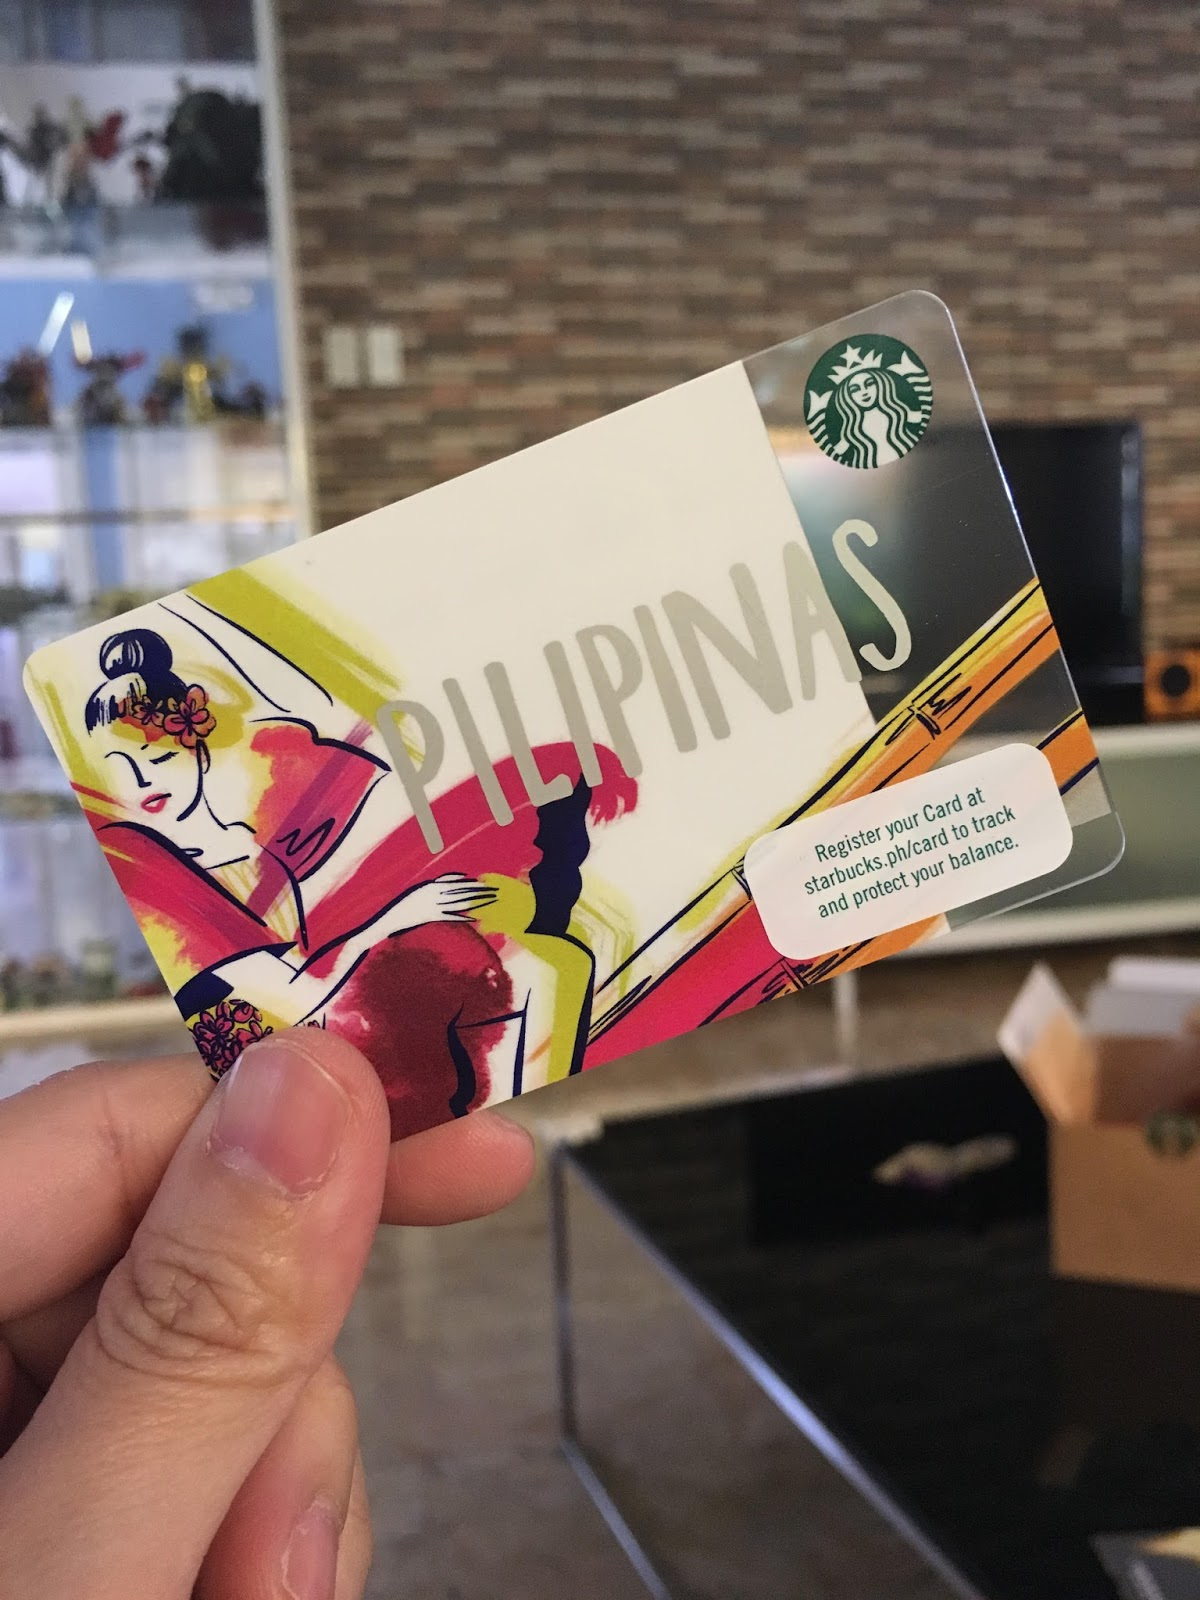 This 2017 Edition As Starbucks Card Is Available Starting July 25, 2017  (Tuesday) So Save The Date And Head On To Your Favorite Starbucks Store To  Get One.